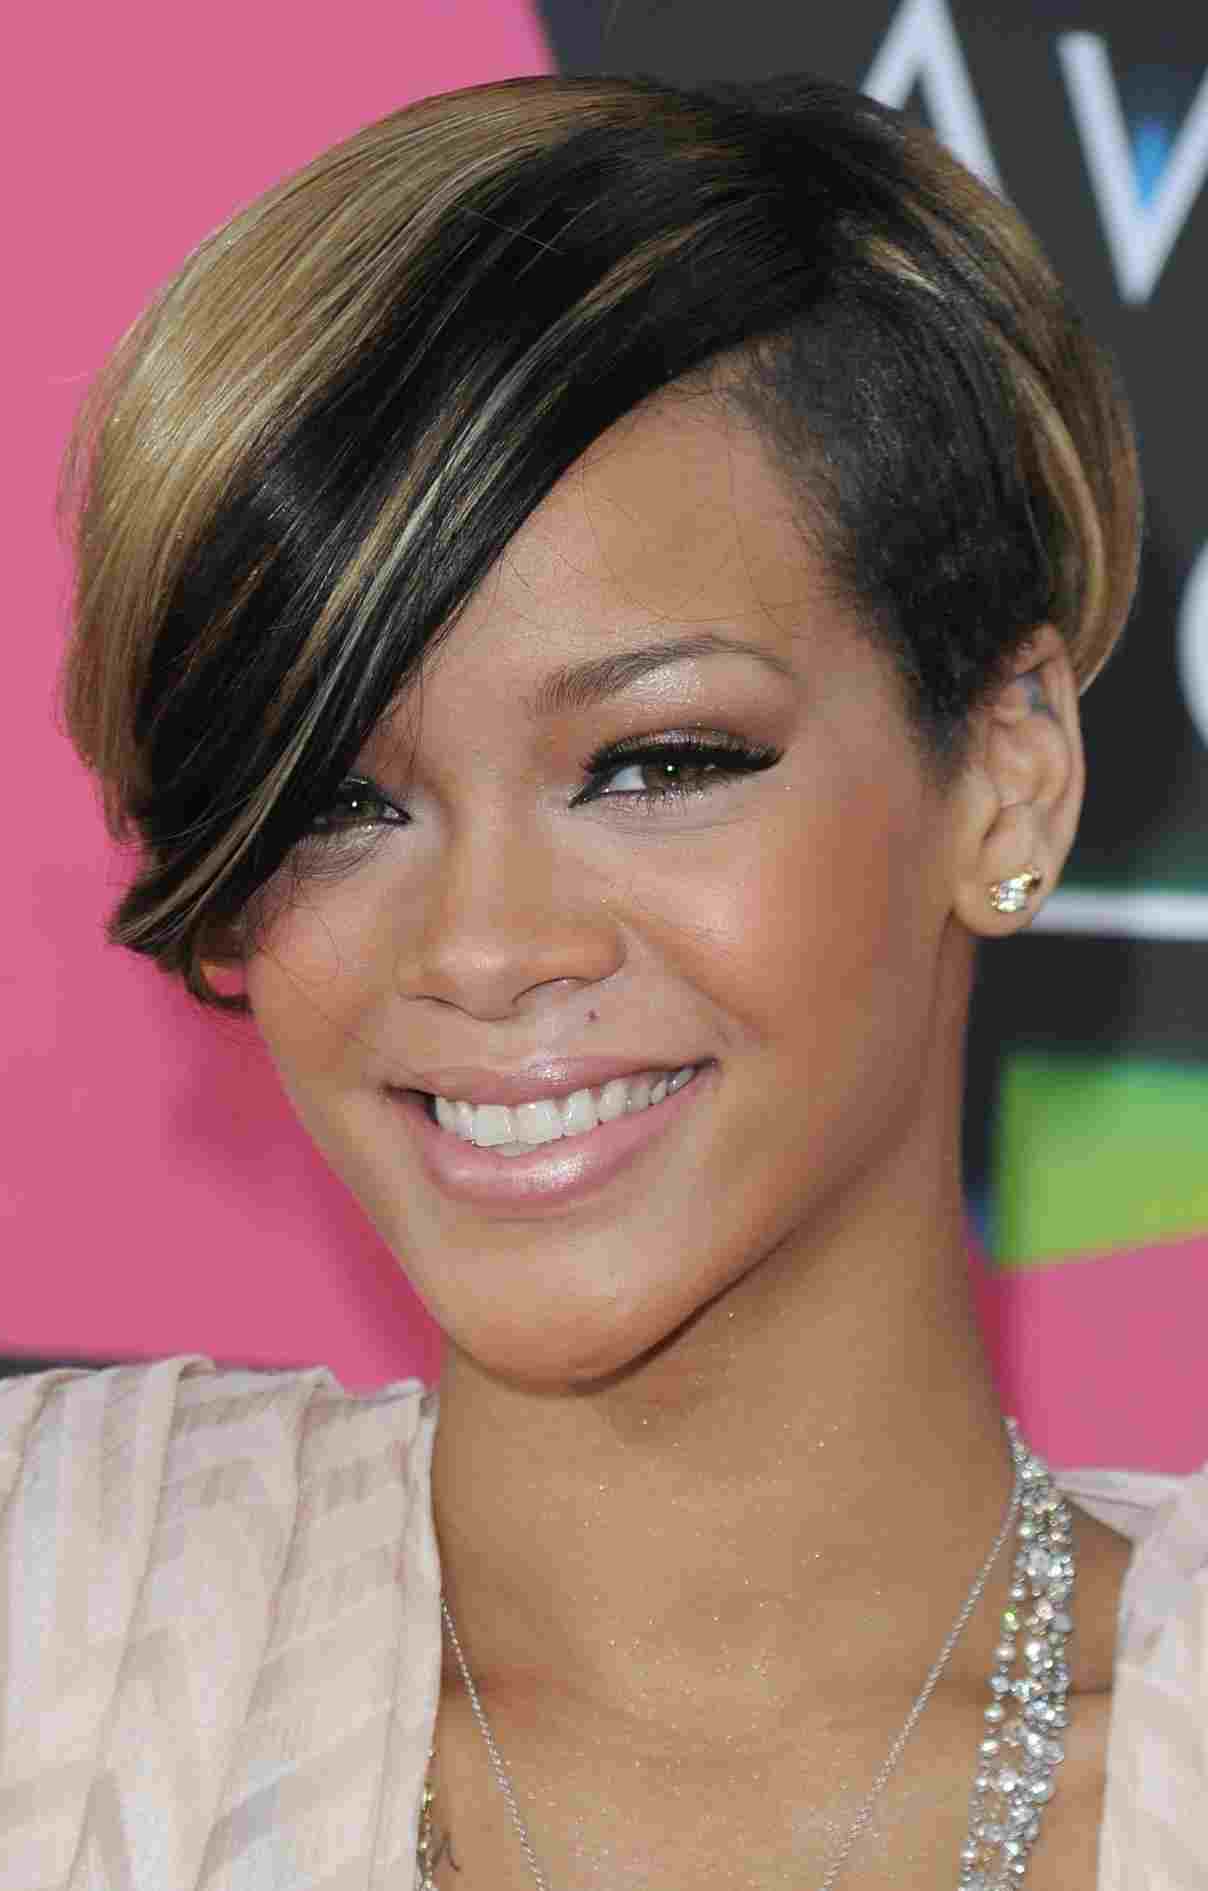 Fat Faces Styles Round Black Women Thin Cute Rhstylespediacom Cortes Throughout Short Haircuts For Black Women With Fine Hair (View 15 of 25)